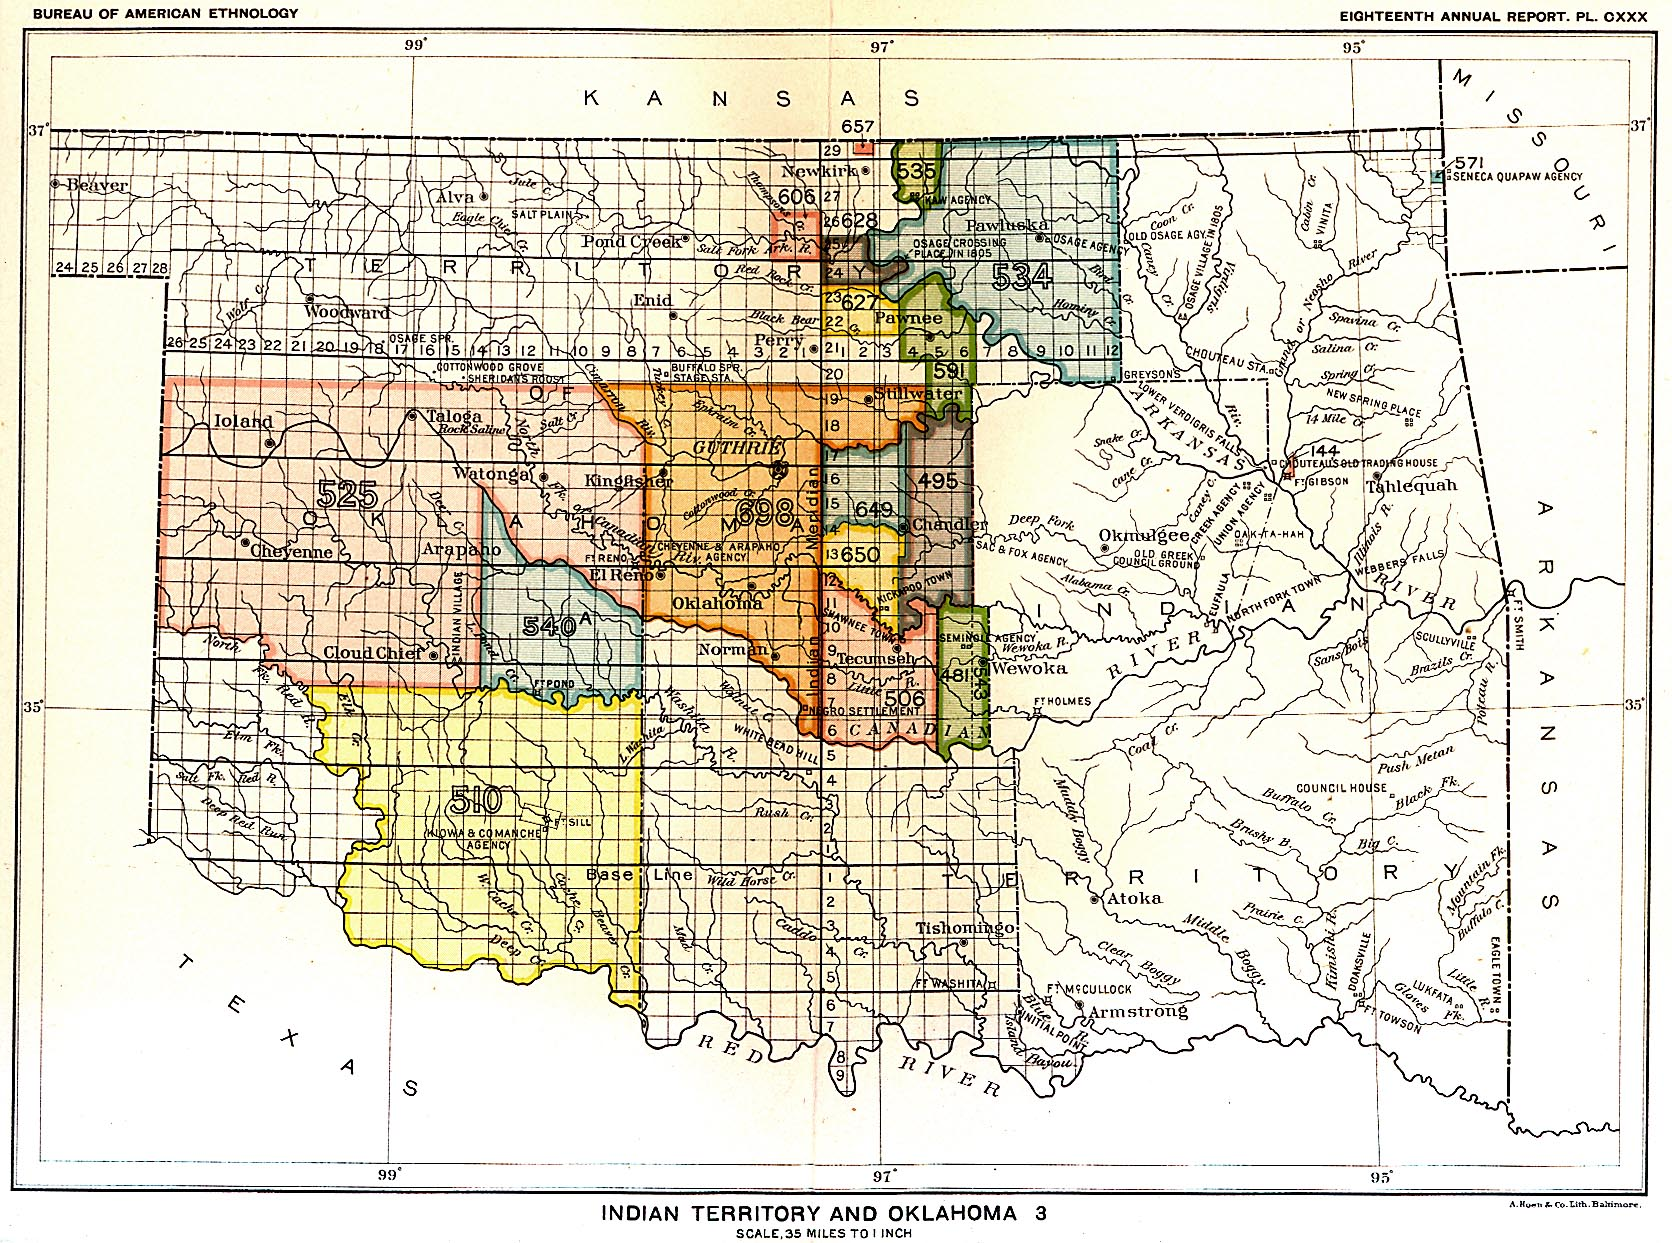 Indian Land Cessions In The U S Indian Territory Oklahoma - Us map of indian territories